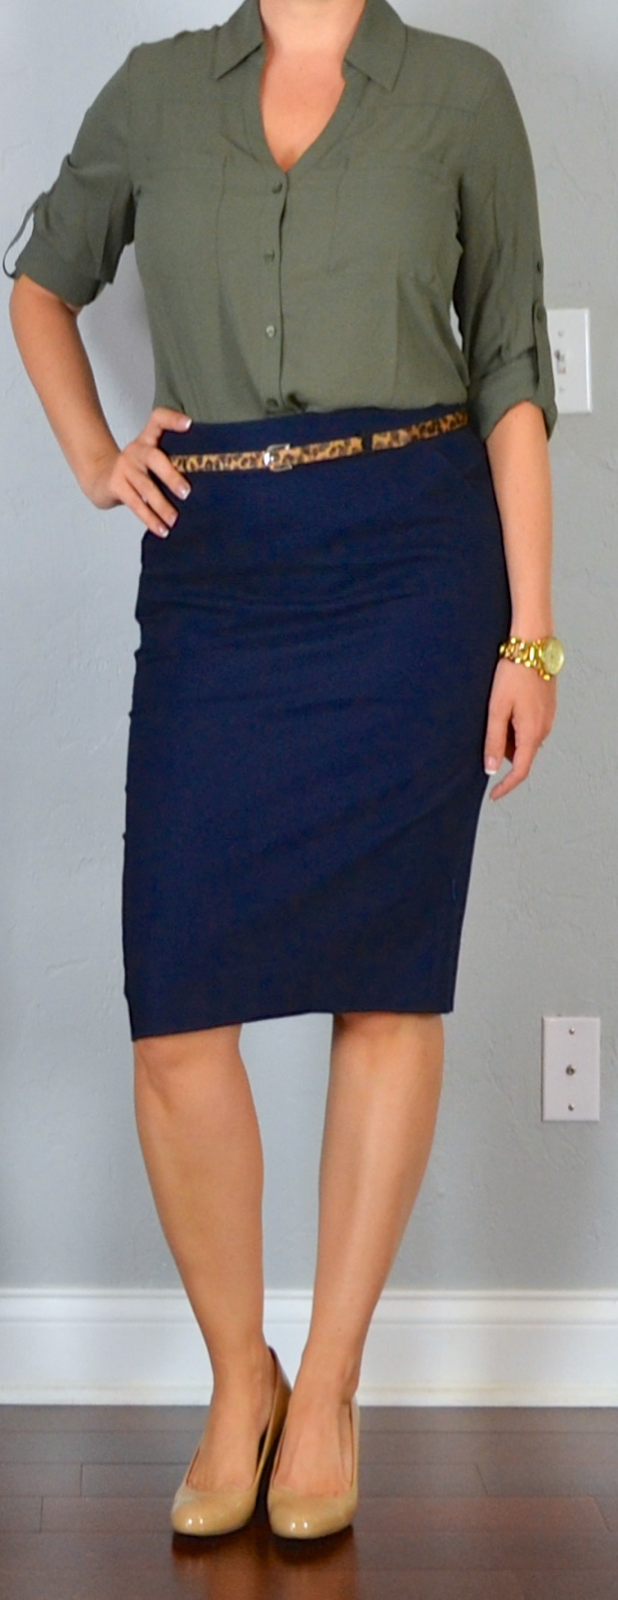 Outfit post navy pencil skirt olive green portofino shirt leopard belt nude wedges